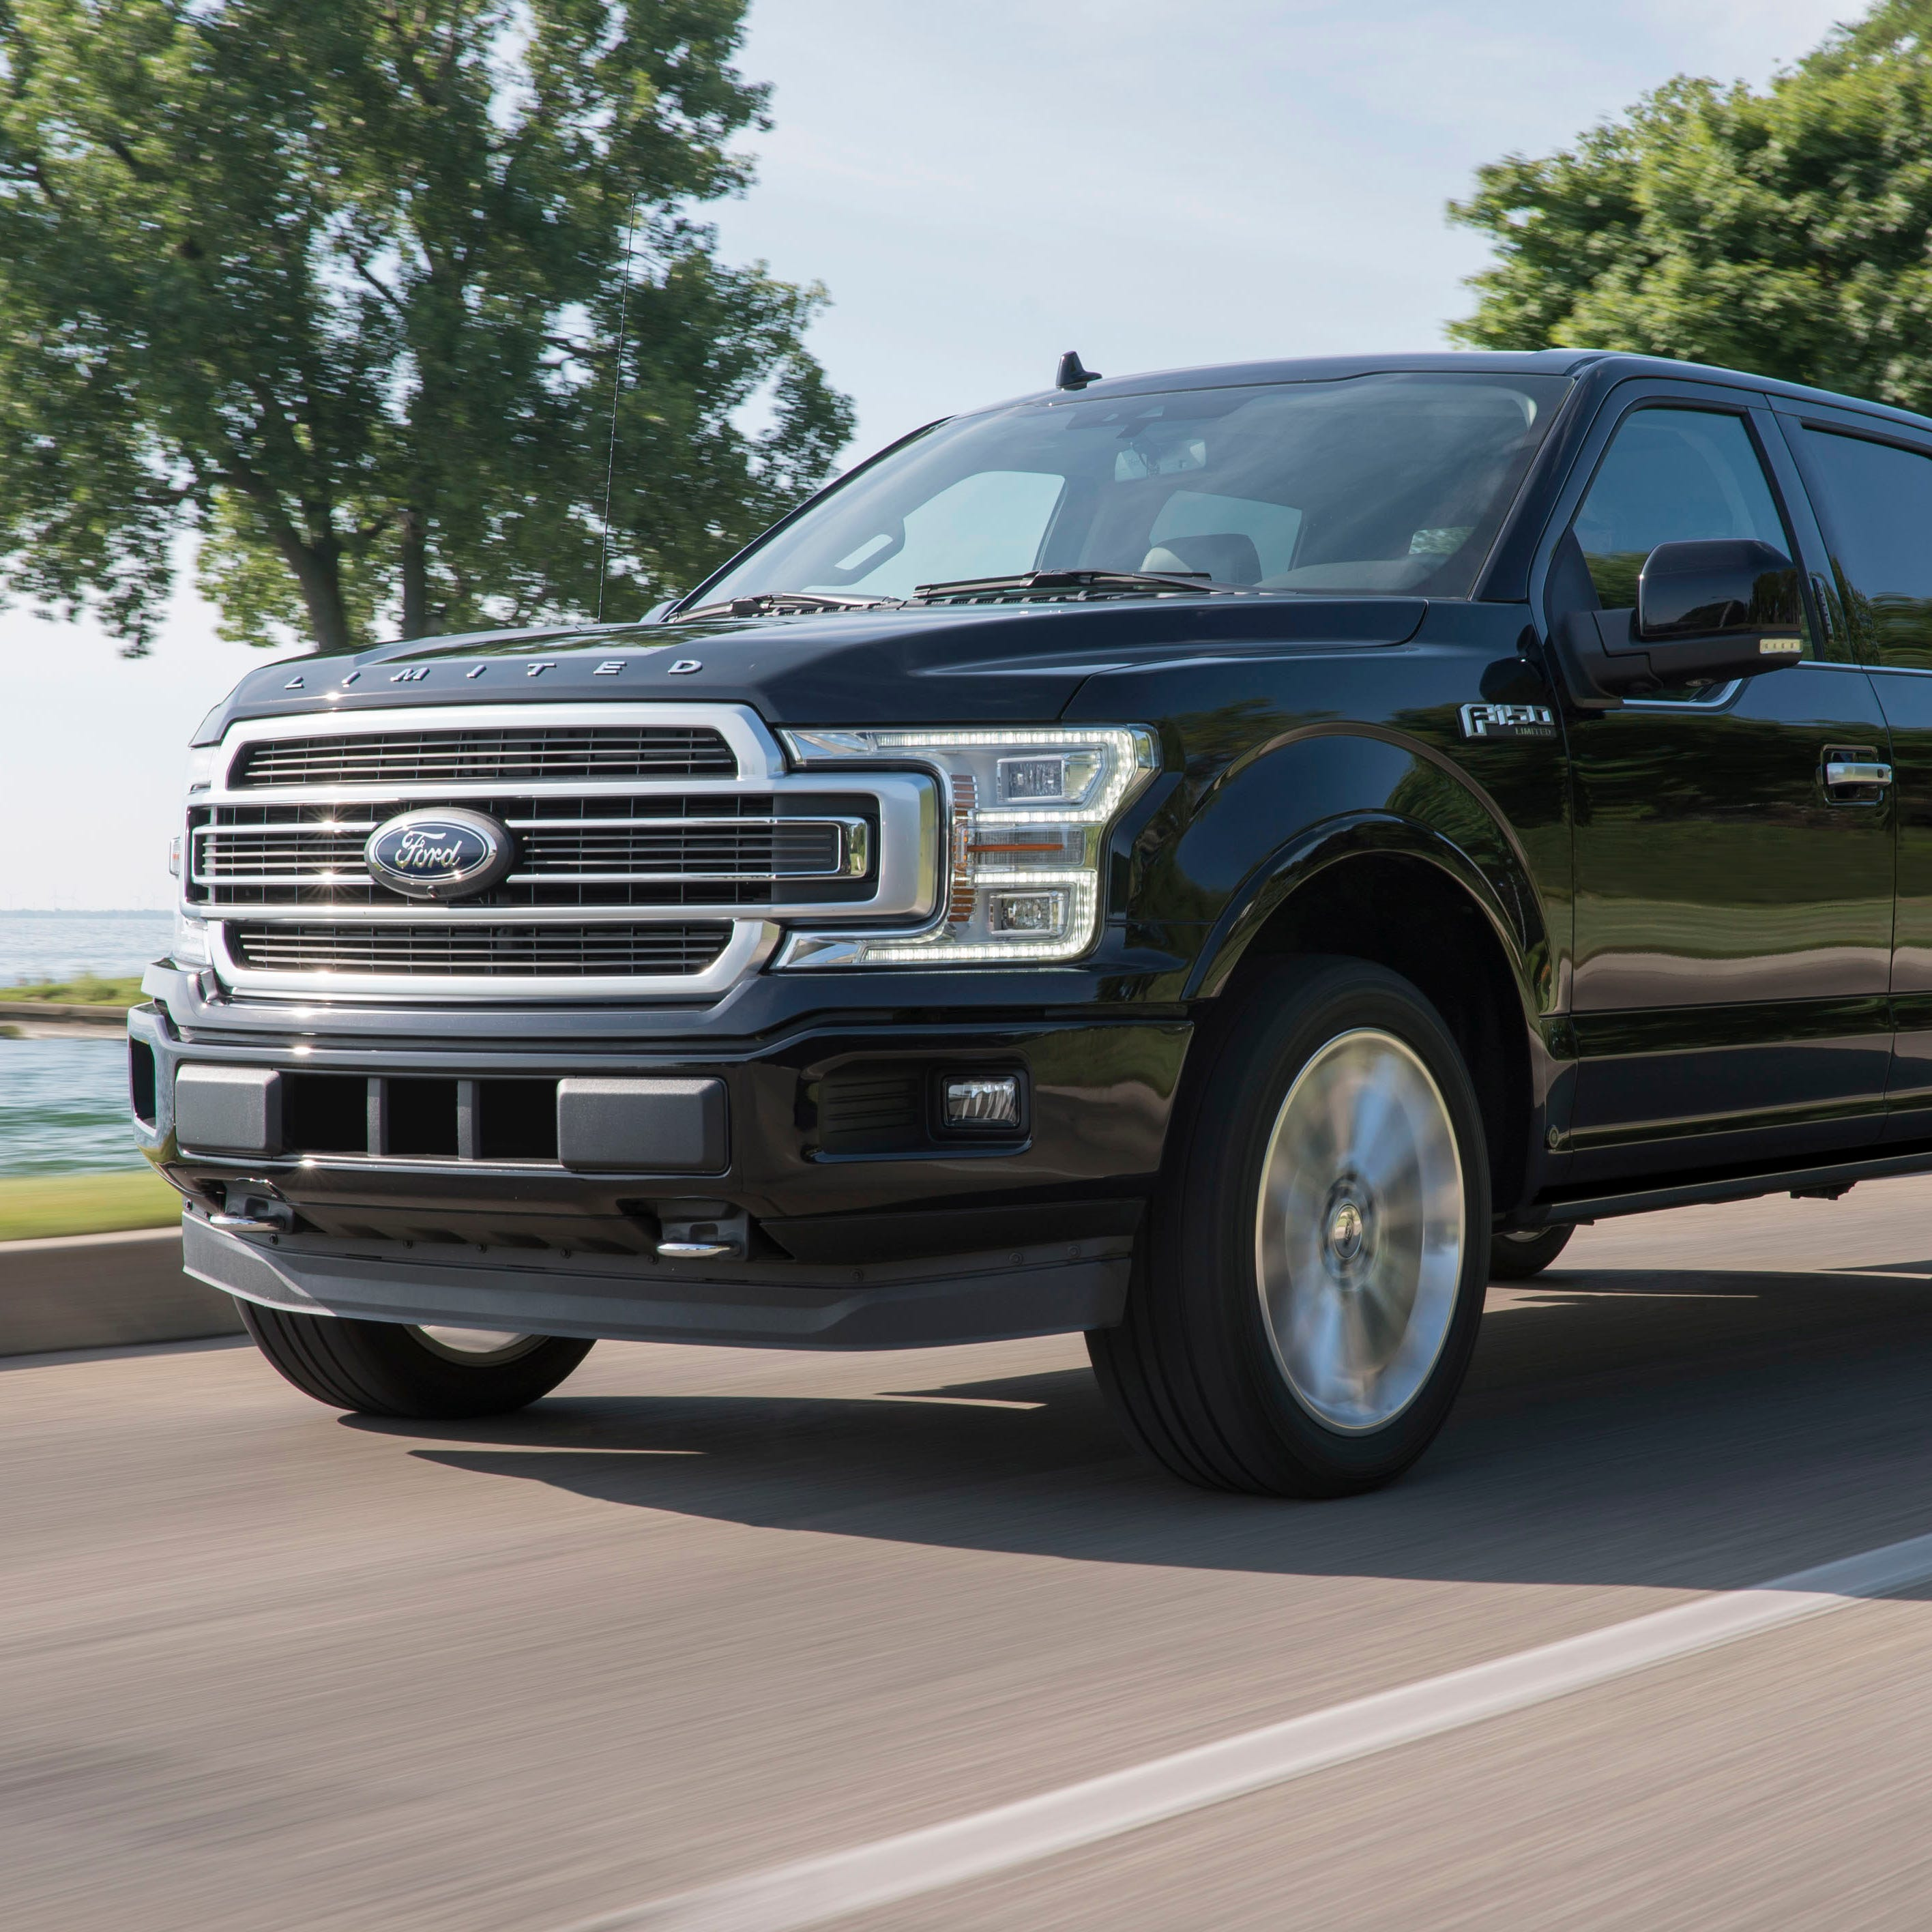 Ford CFO: Company will look different, but it will keep dominating in pickups